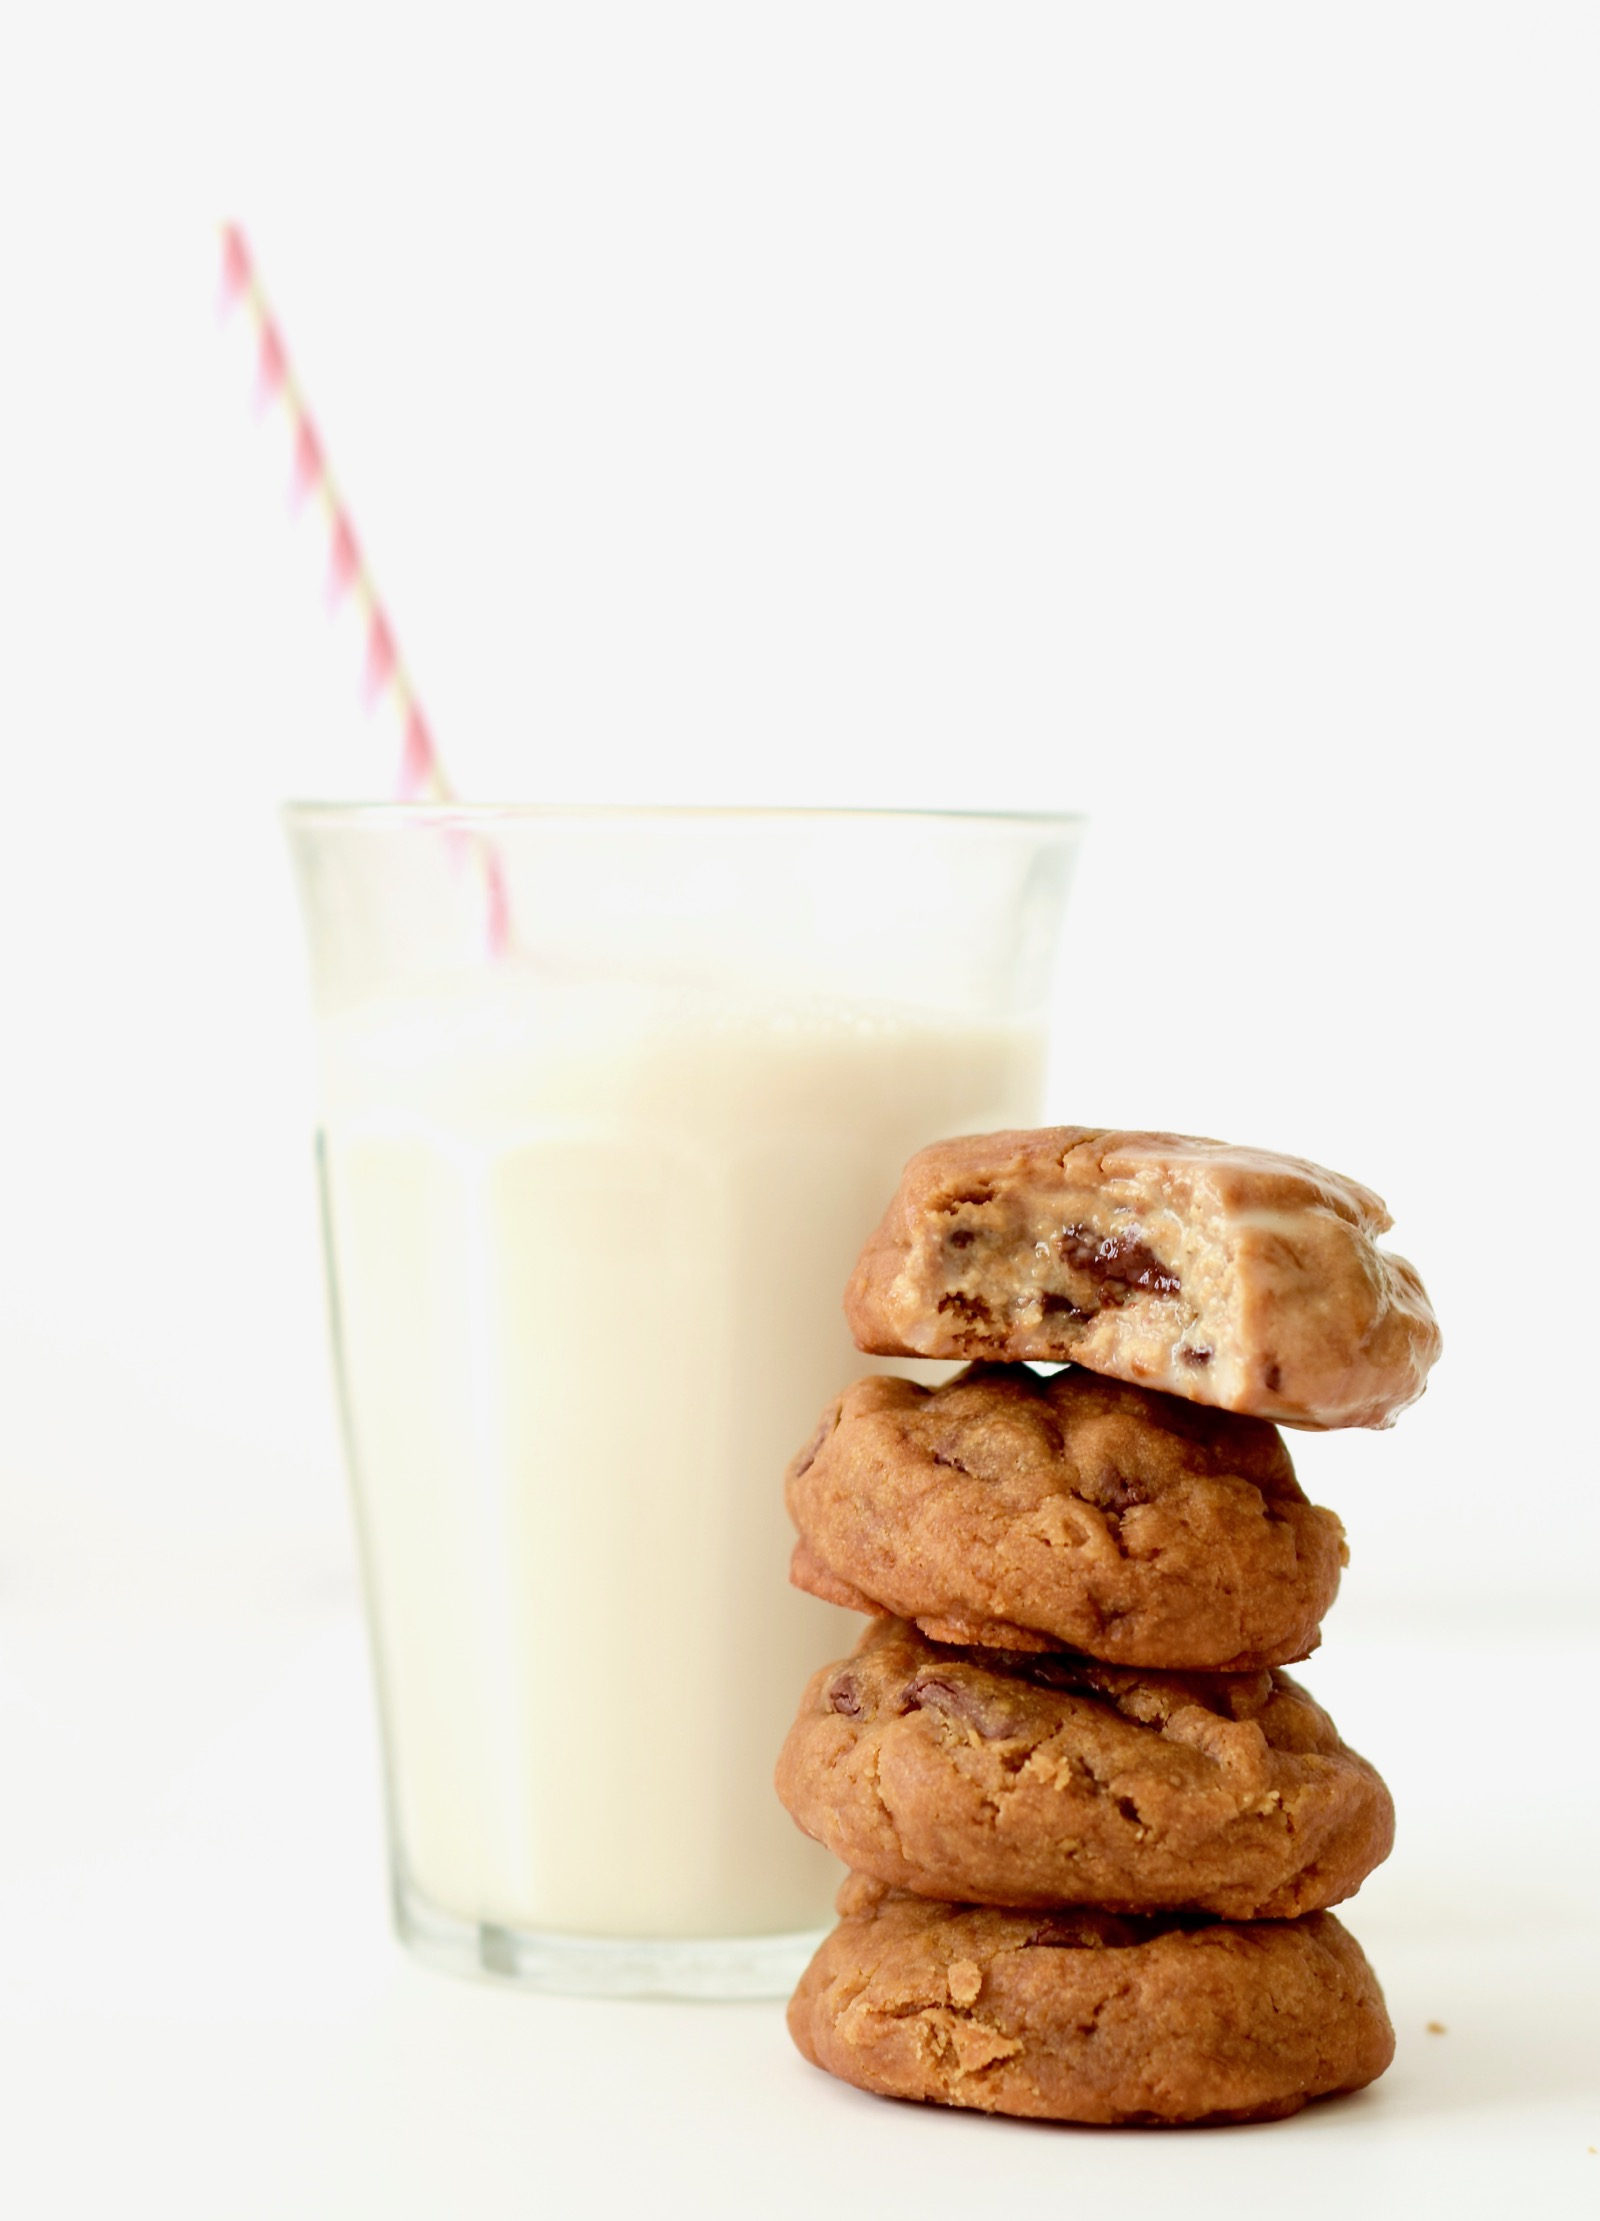 Vegan Chocolate Chip Cookies Recipe Dairy-Free